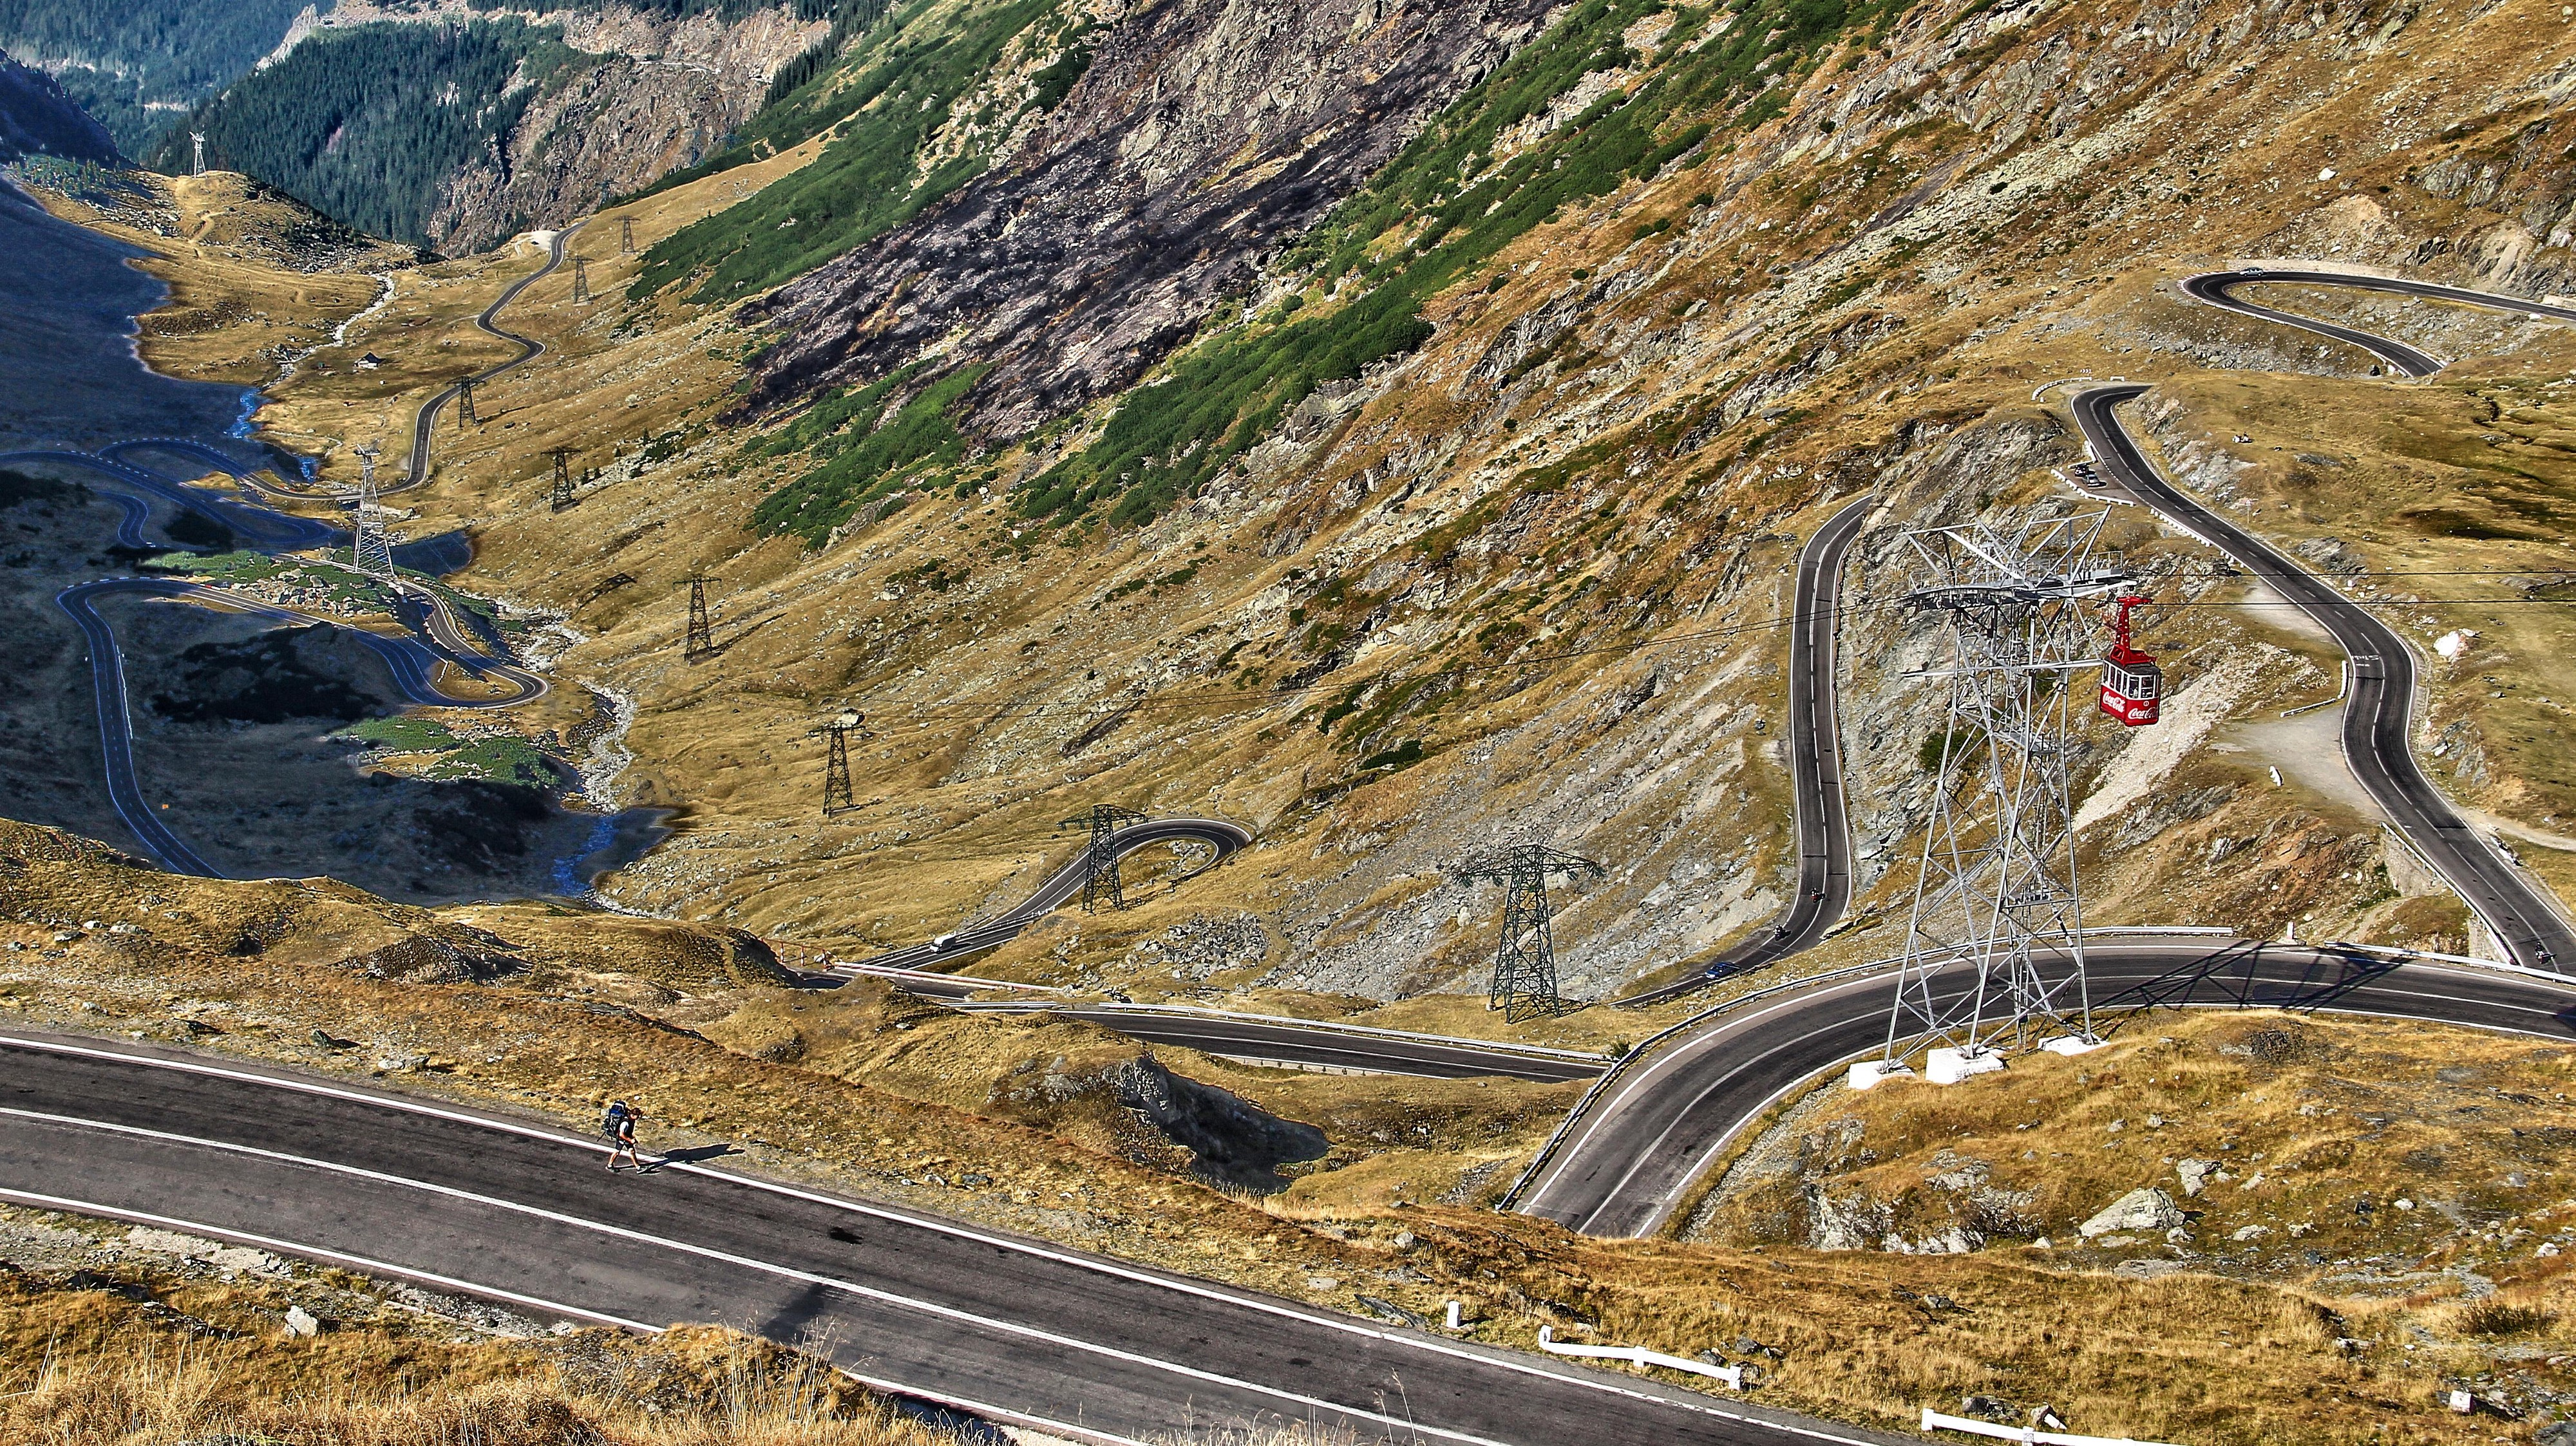 The Transfagarasan road in Romania has many tight curves & winds up a mountain. It gives stunning views & a challenging drive